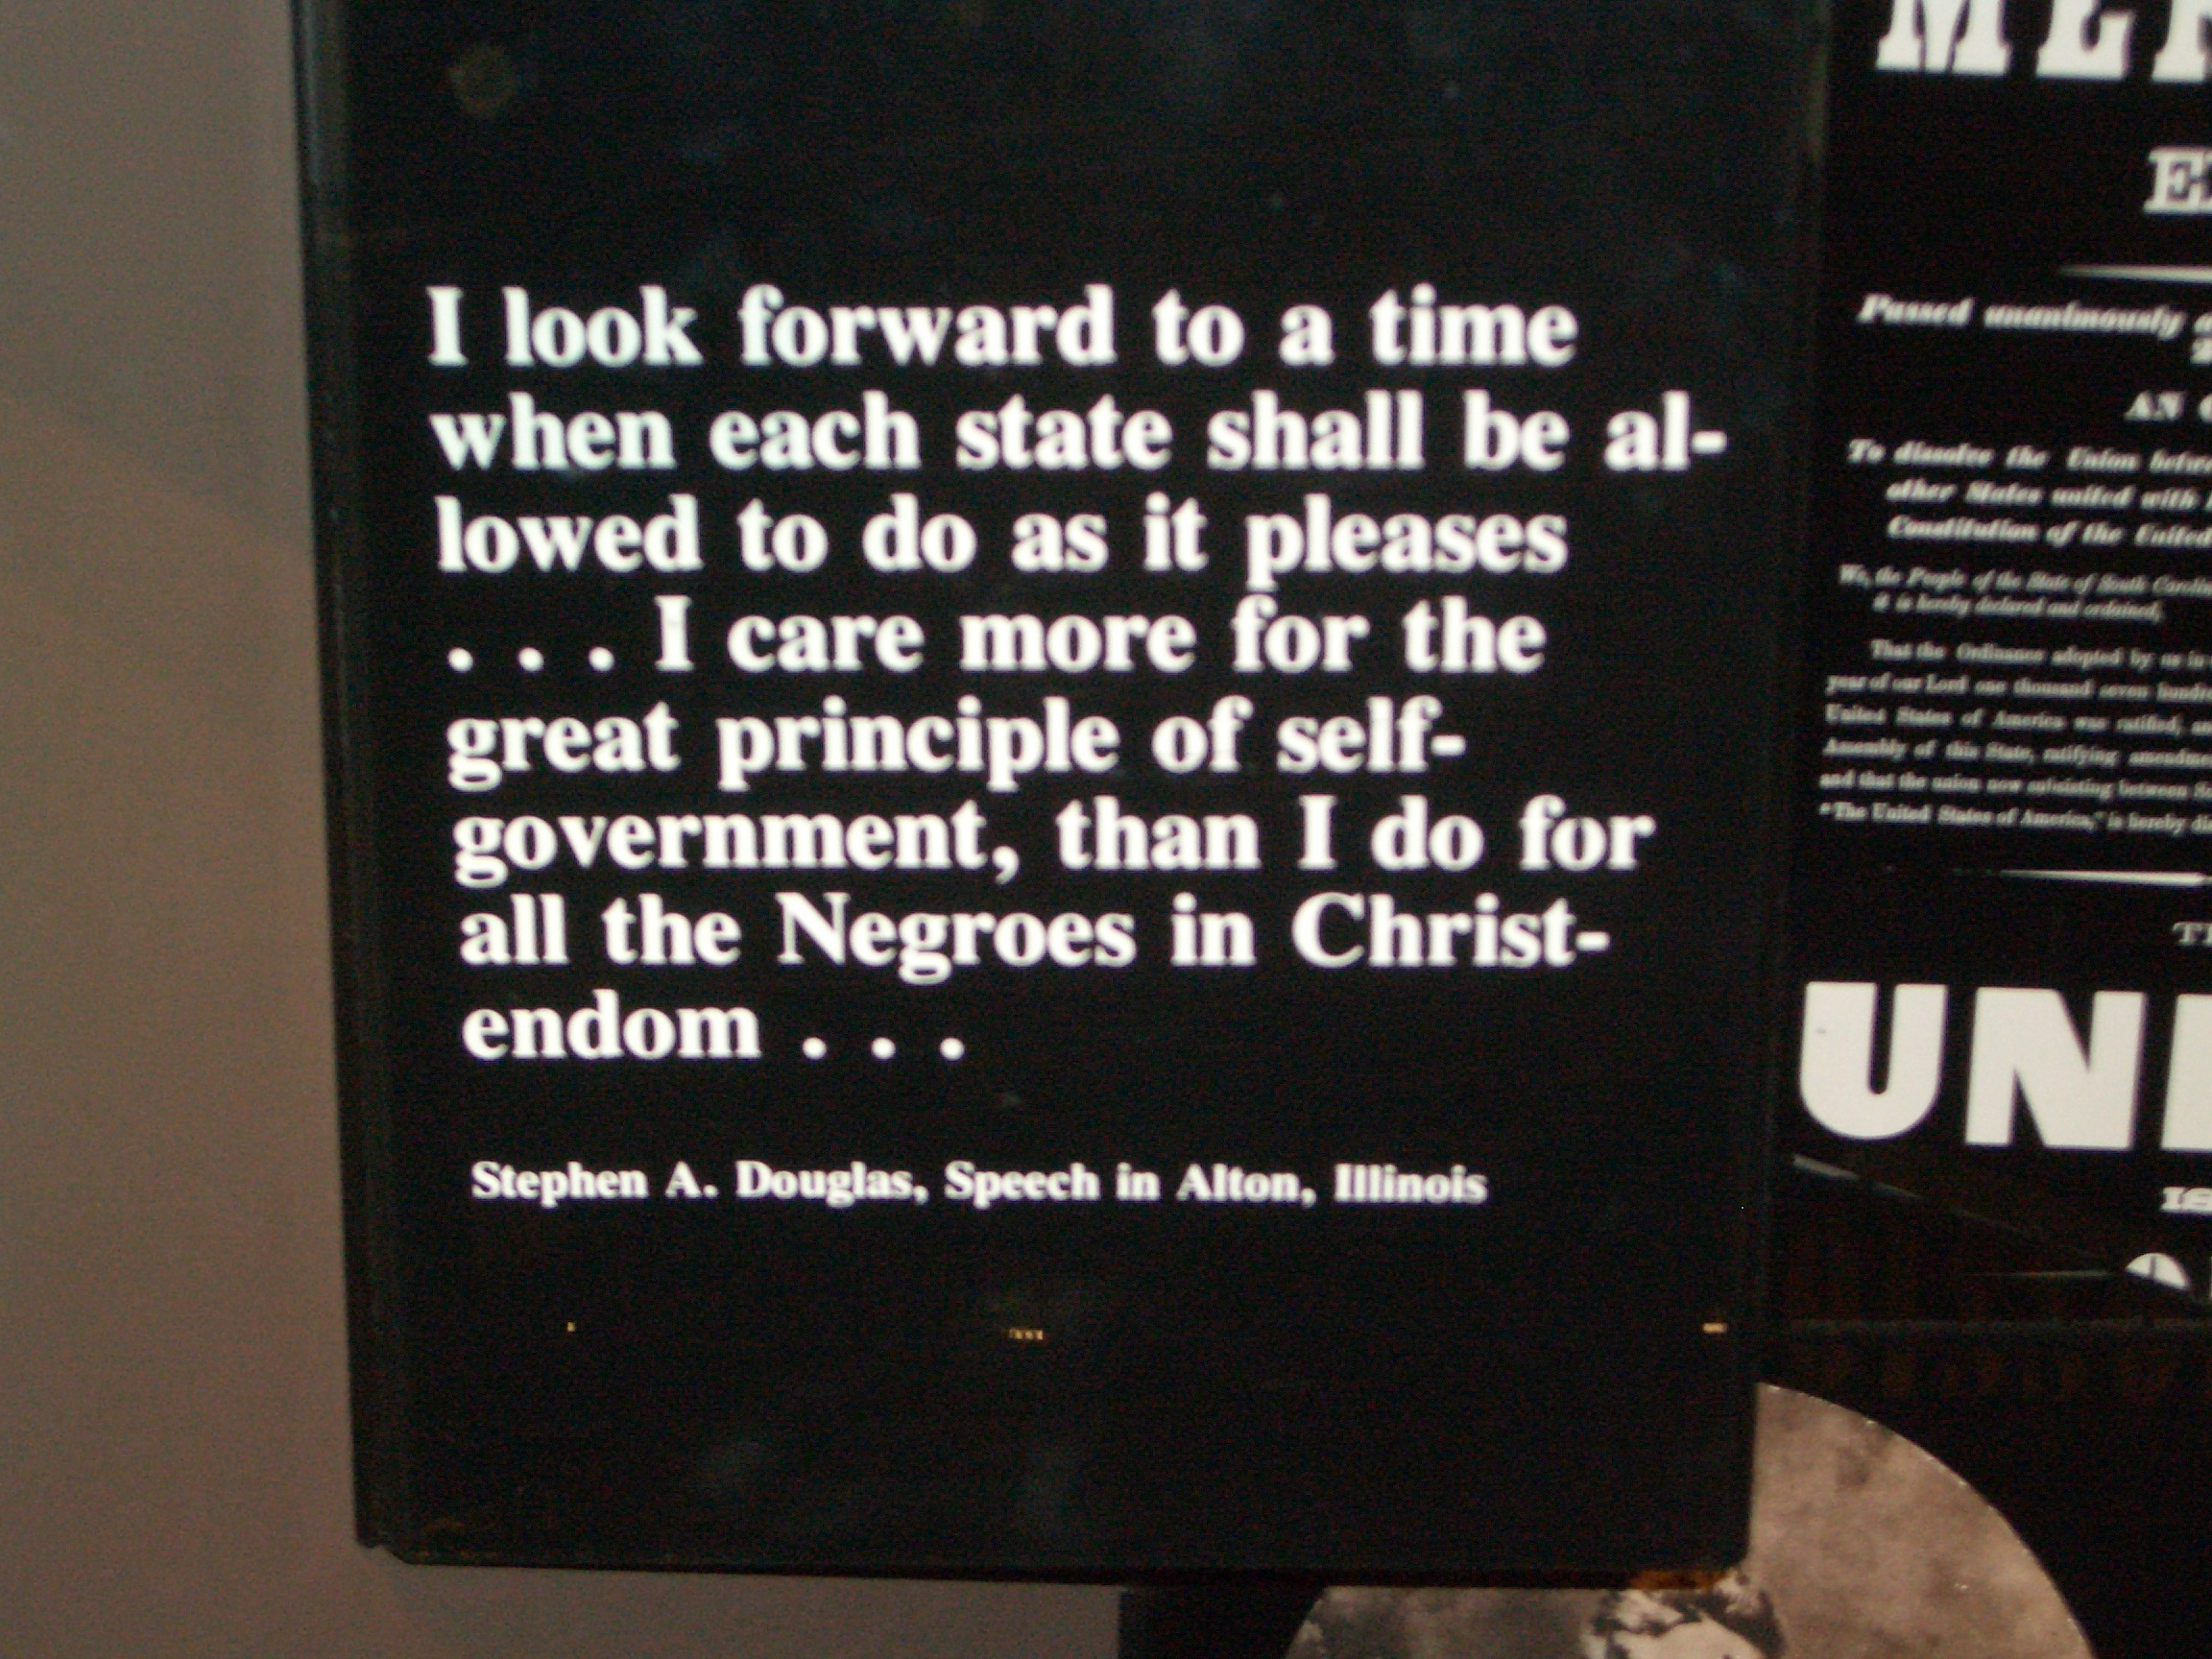 States Rights quote from St. Louis Arch museum